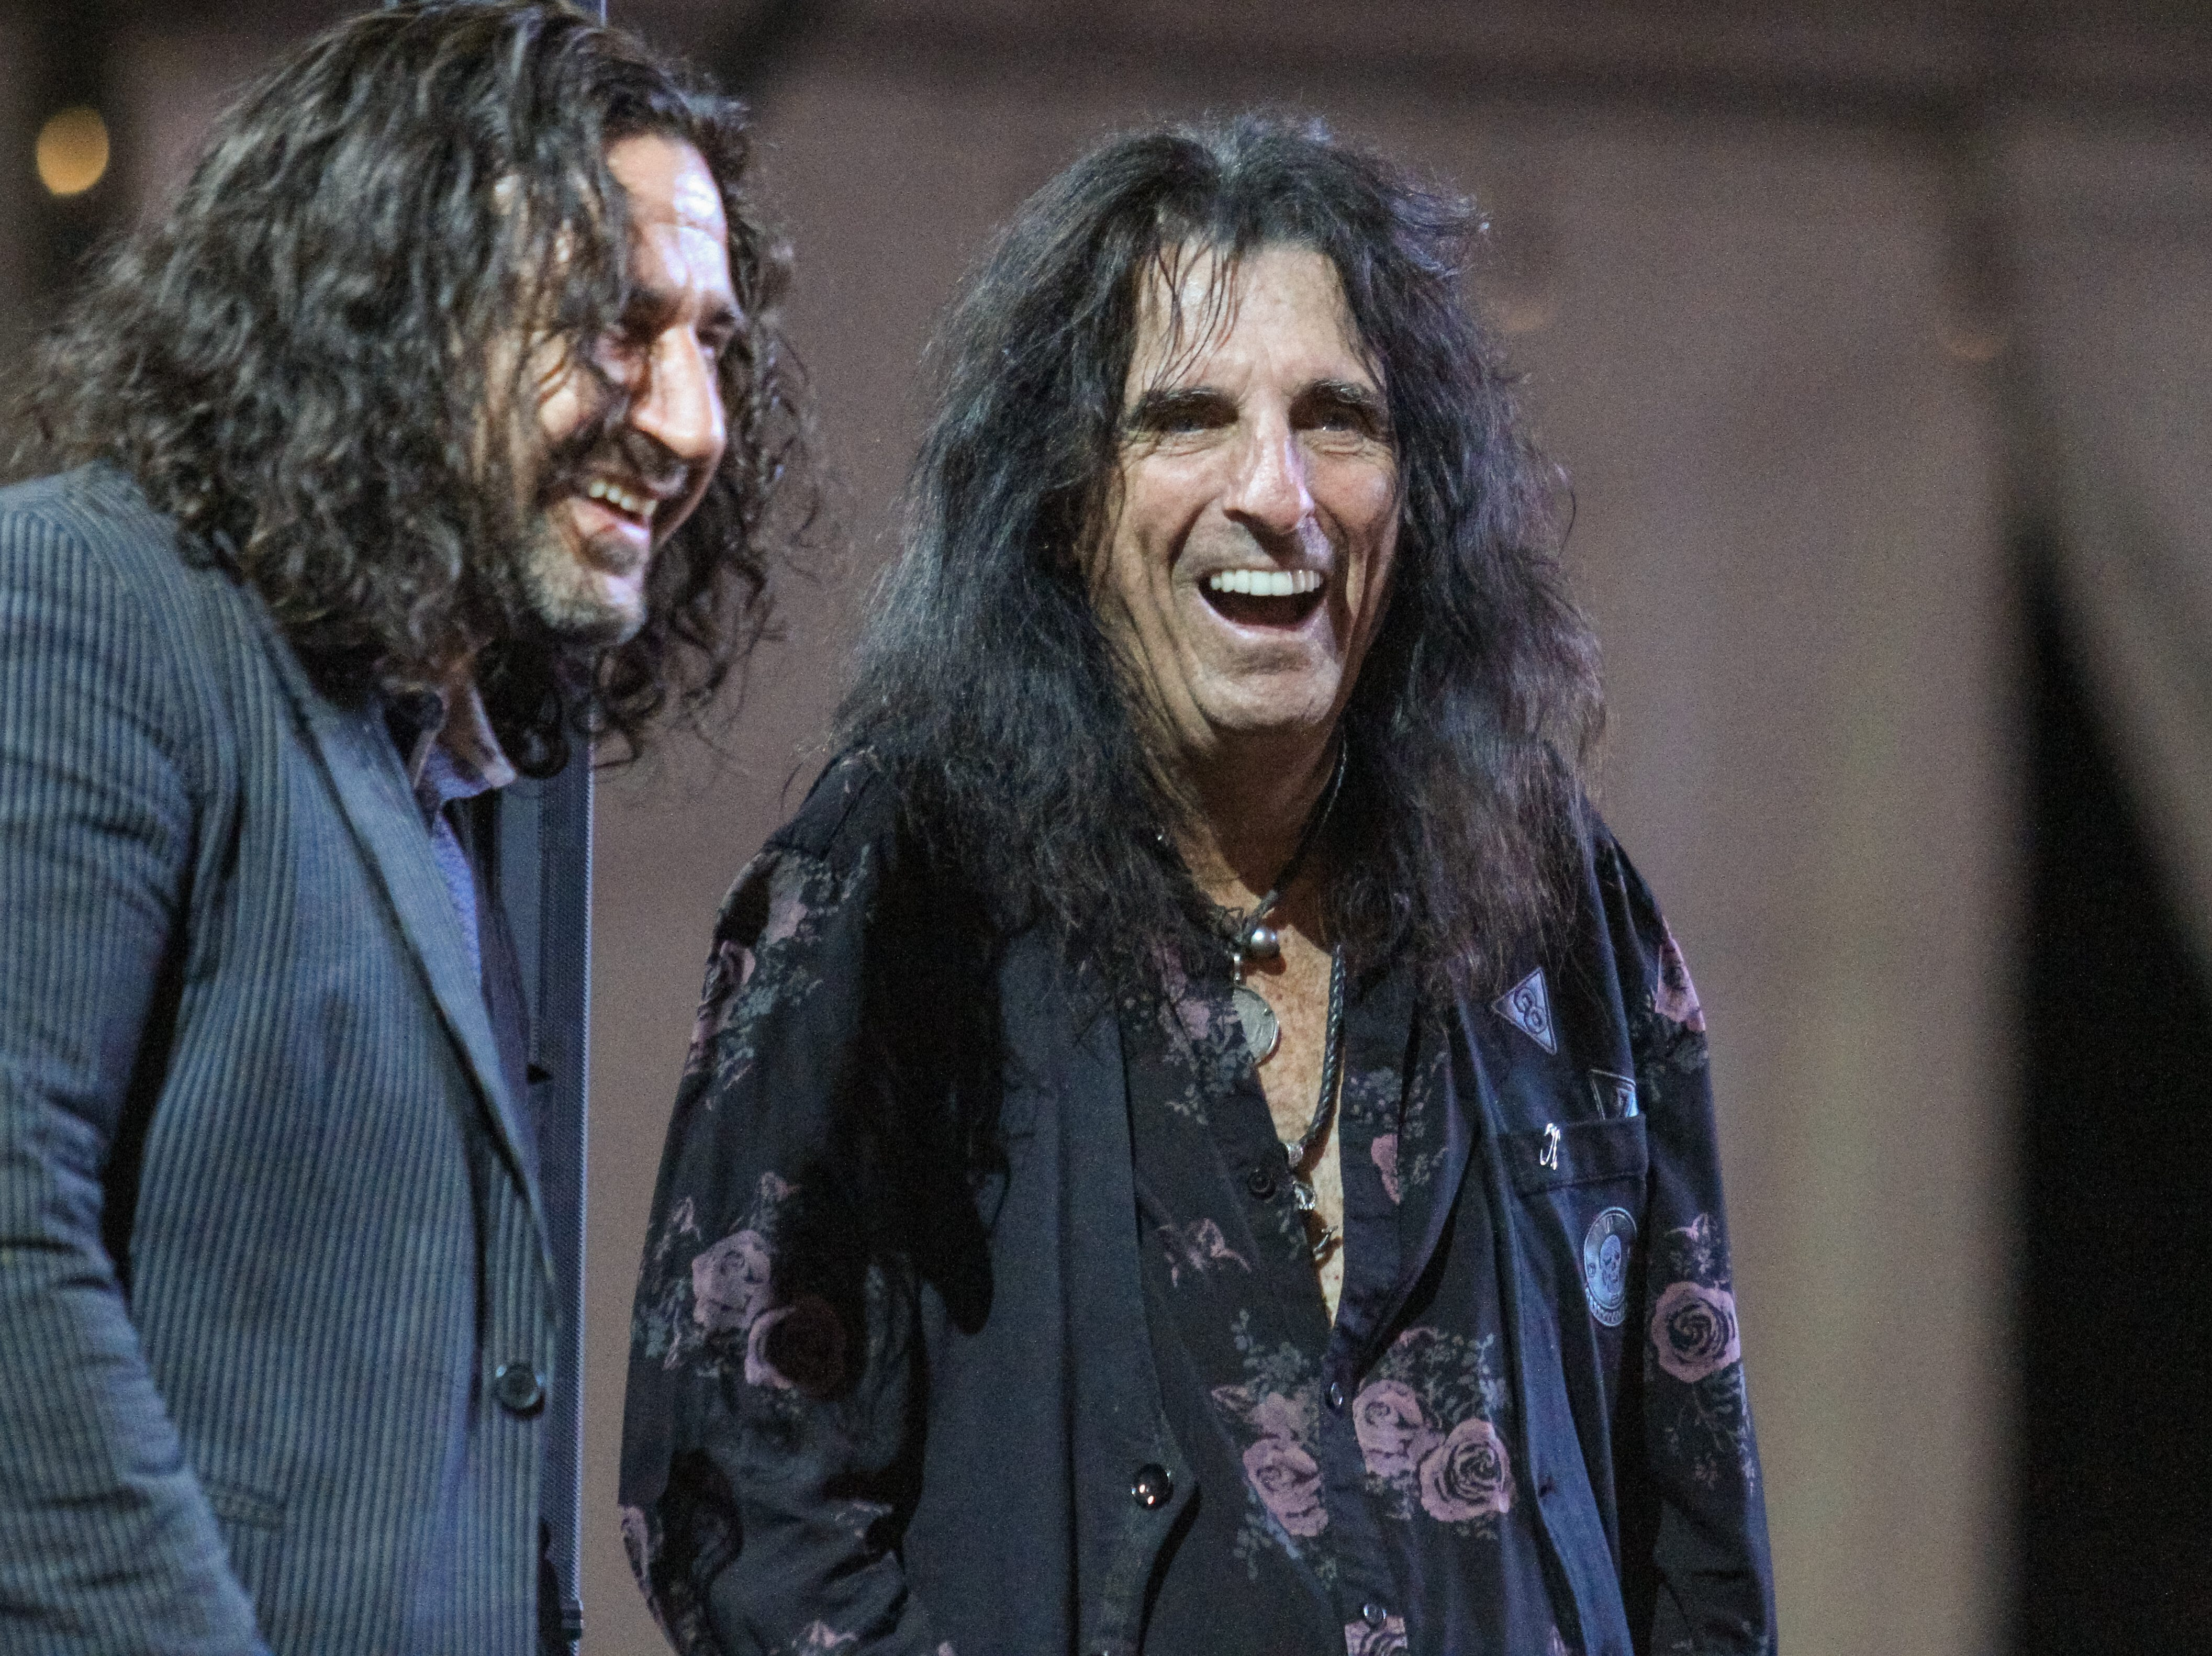 Paintings are auctioned off at Alice Cooper's Rock & Roll Fundraising Bash at the Las Sendas Golf Club in Mesa on April 27, 2019.